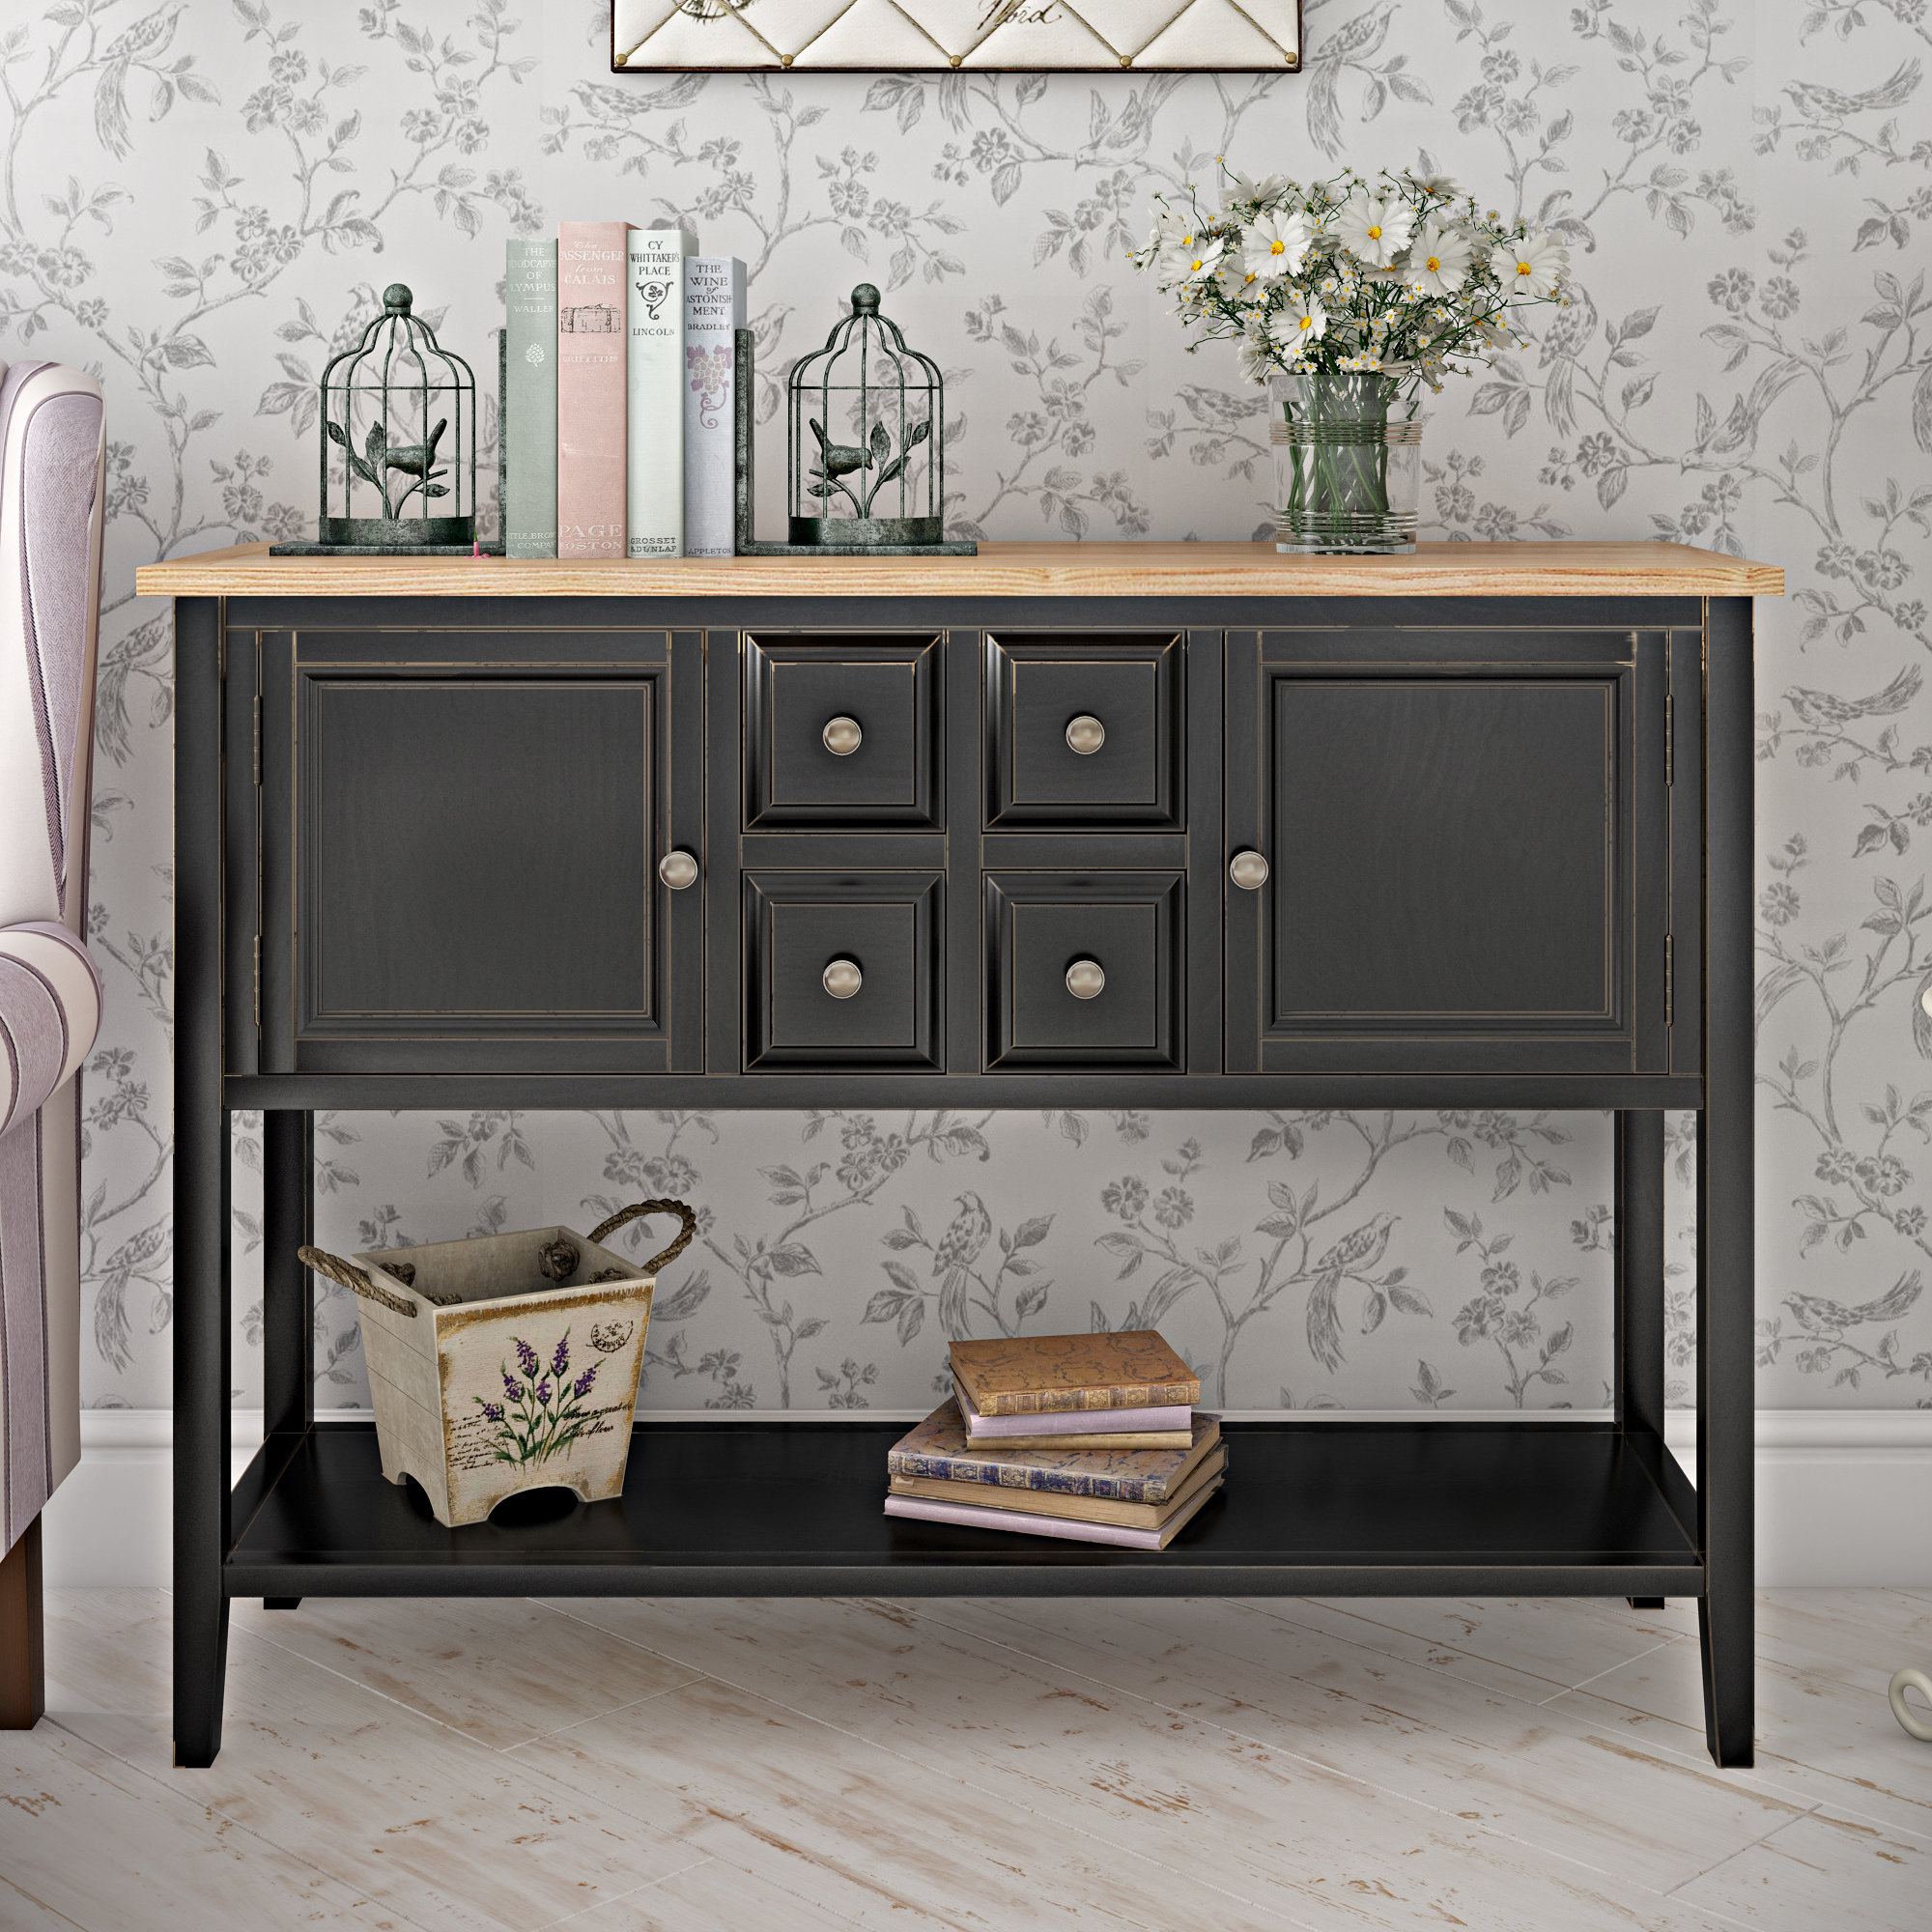 Extra Tall Console Table | Wayfair For Natural Wood Mirrored Media Console Tables (Photo 15 of 30)